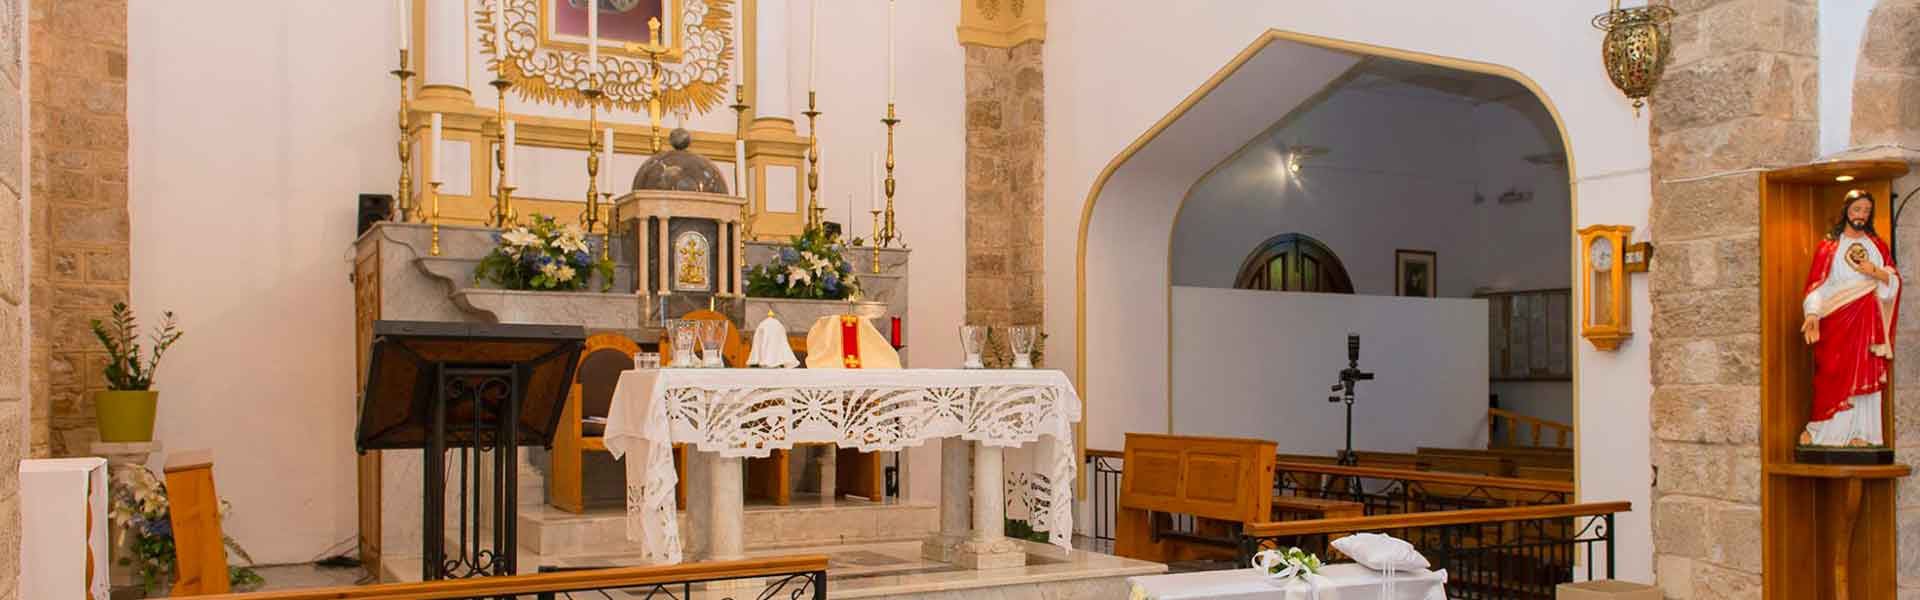 catholic wedding package bespoke travel greece